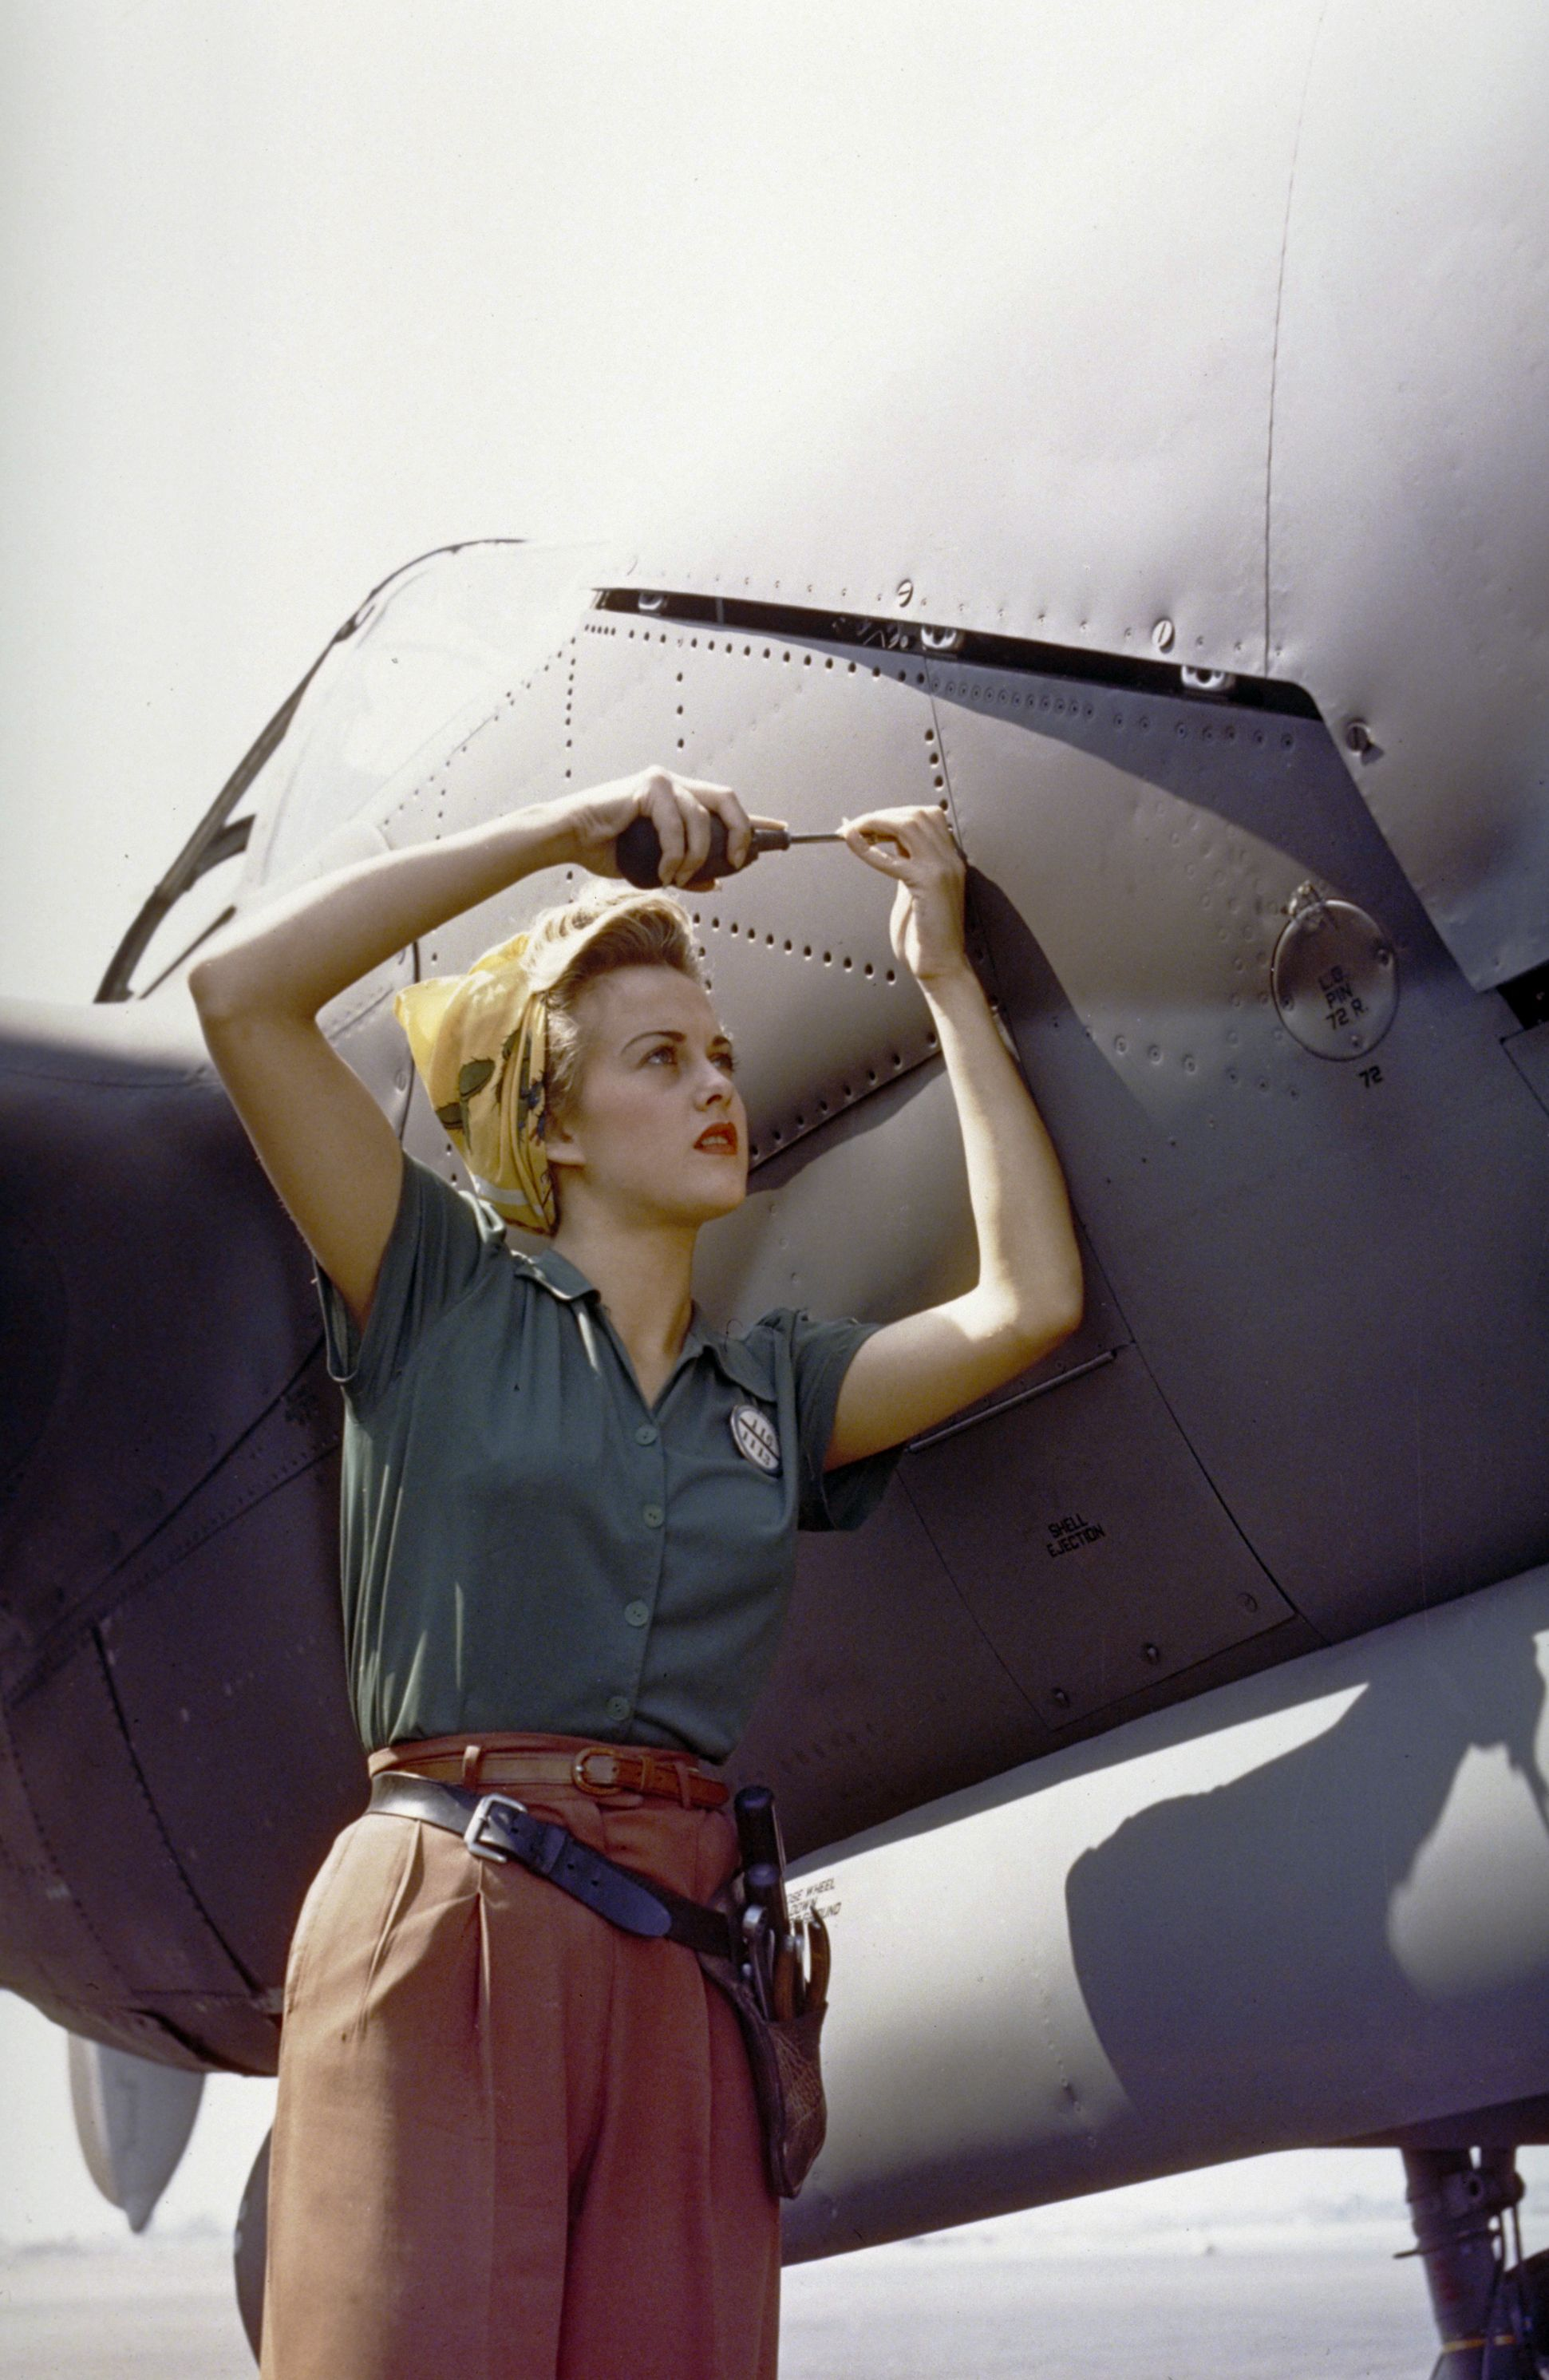 The P-38 Lightning, was first produced in 1941. A Lockheed employee works on one in Burbank, California, 1944.